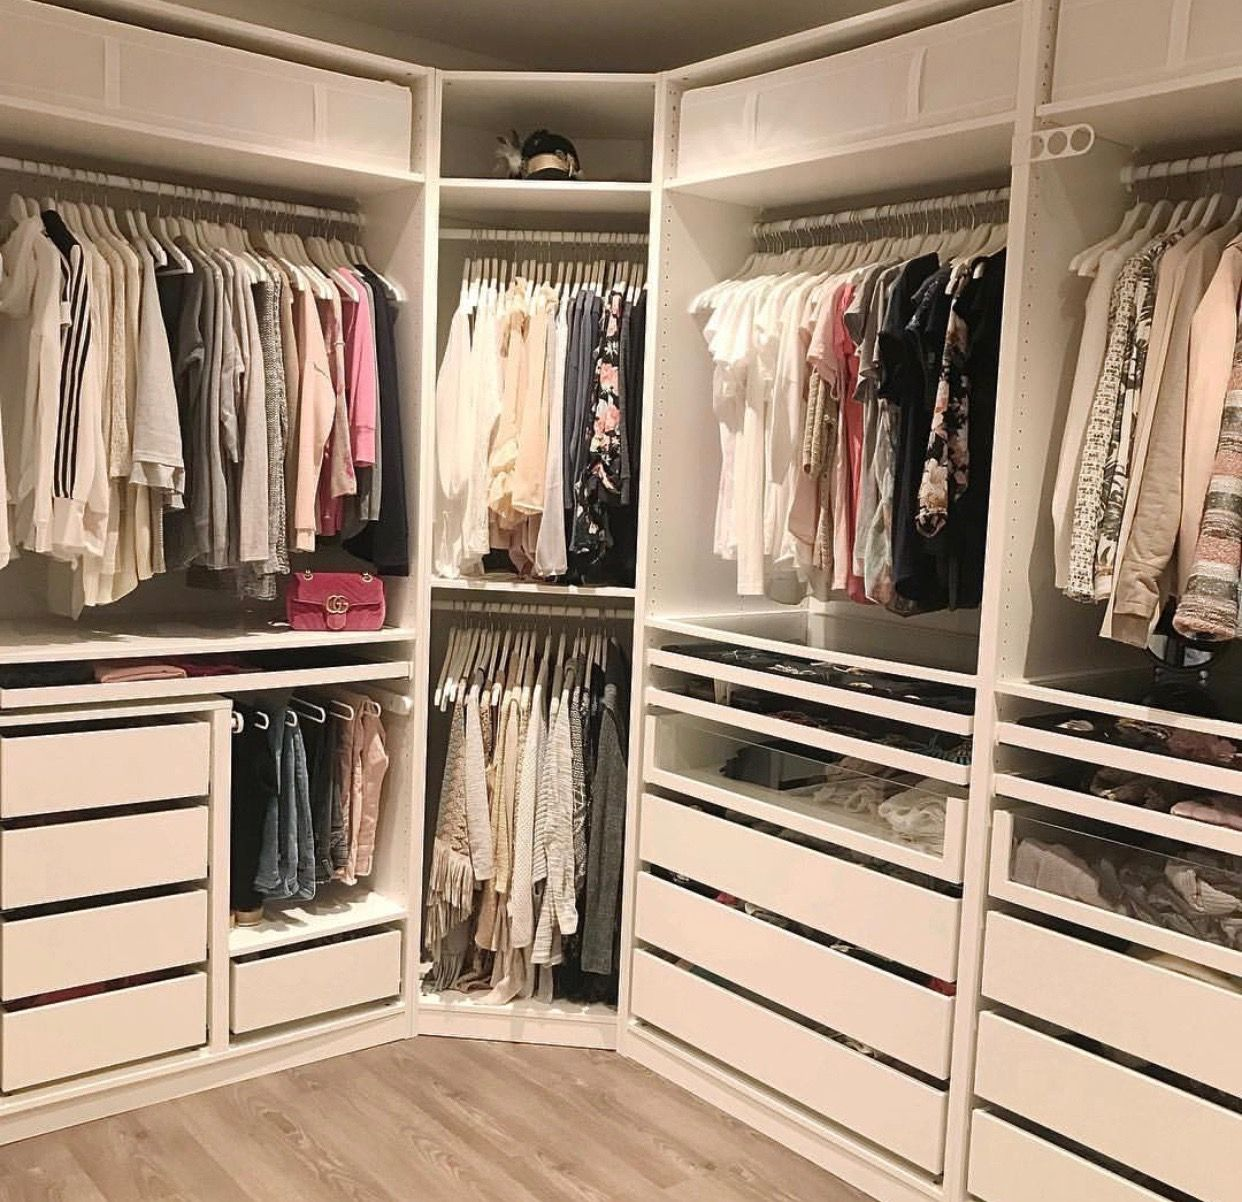 Pin By Rylea Matovka On Home With Images Closet Decor Closet